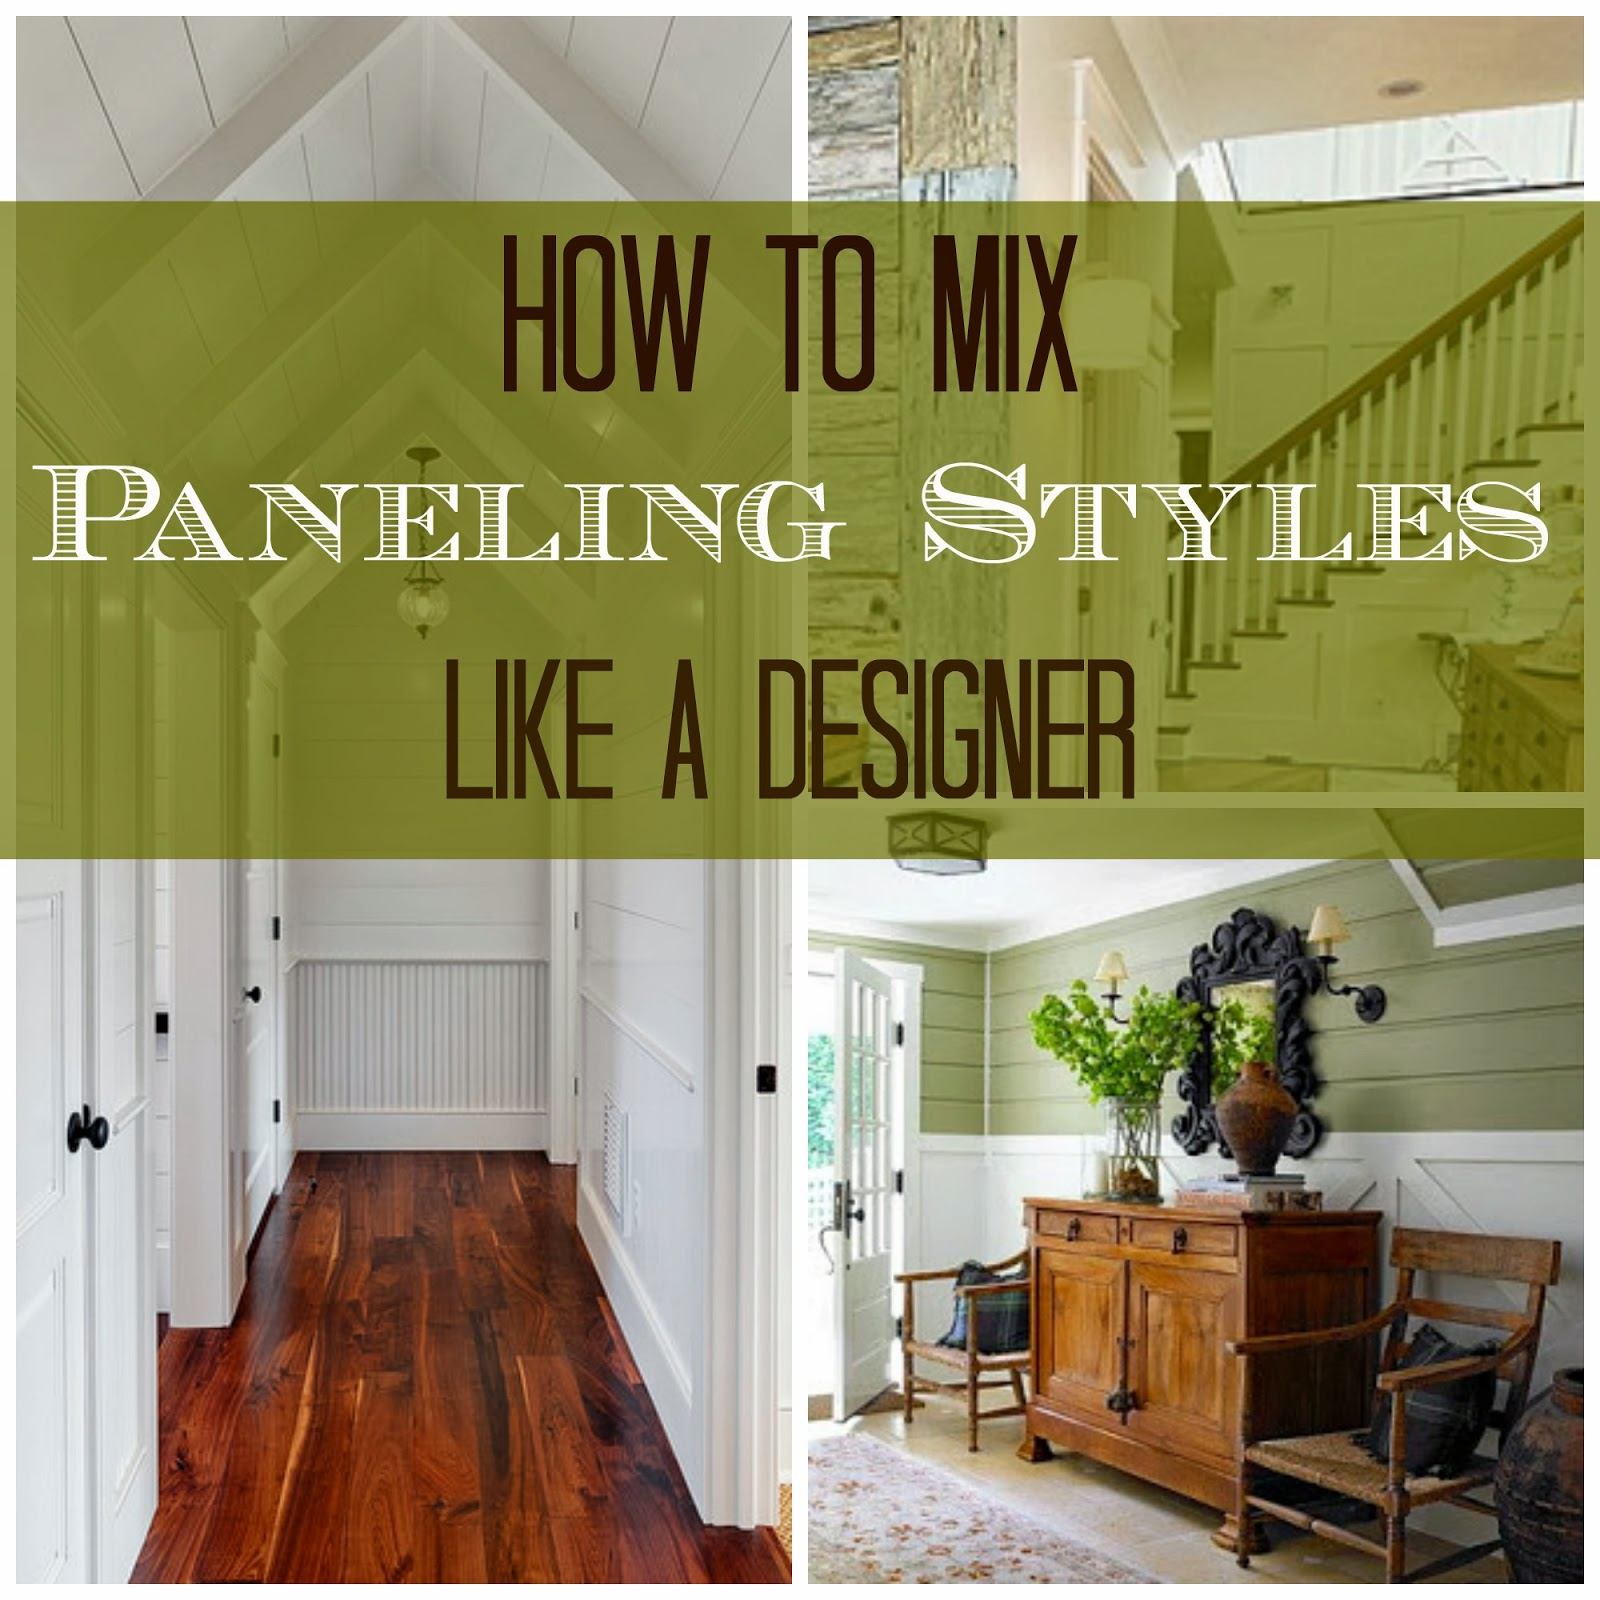 House Revivals: Is it Okay to Mix Paneling Styles?